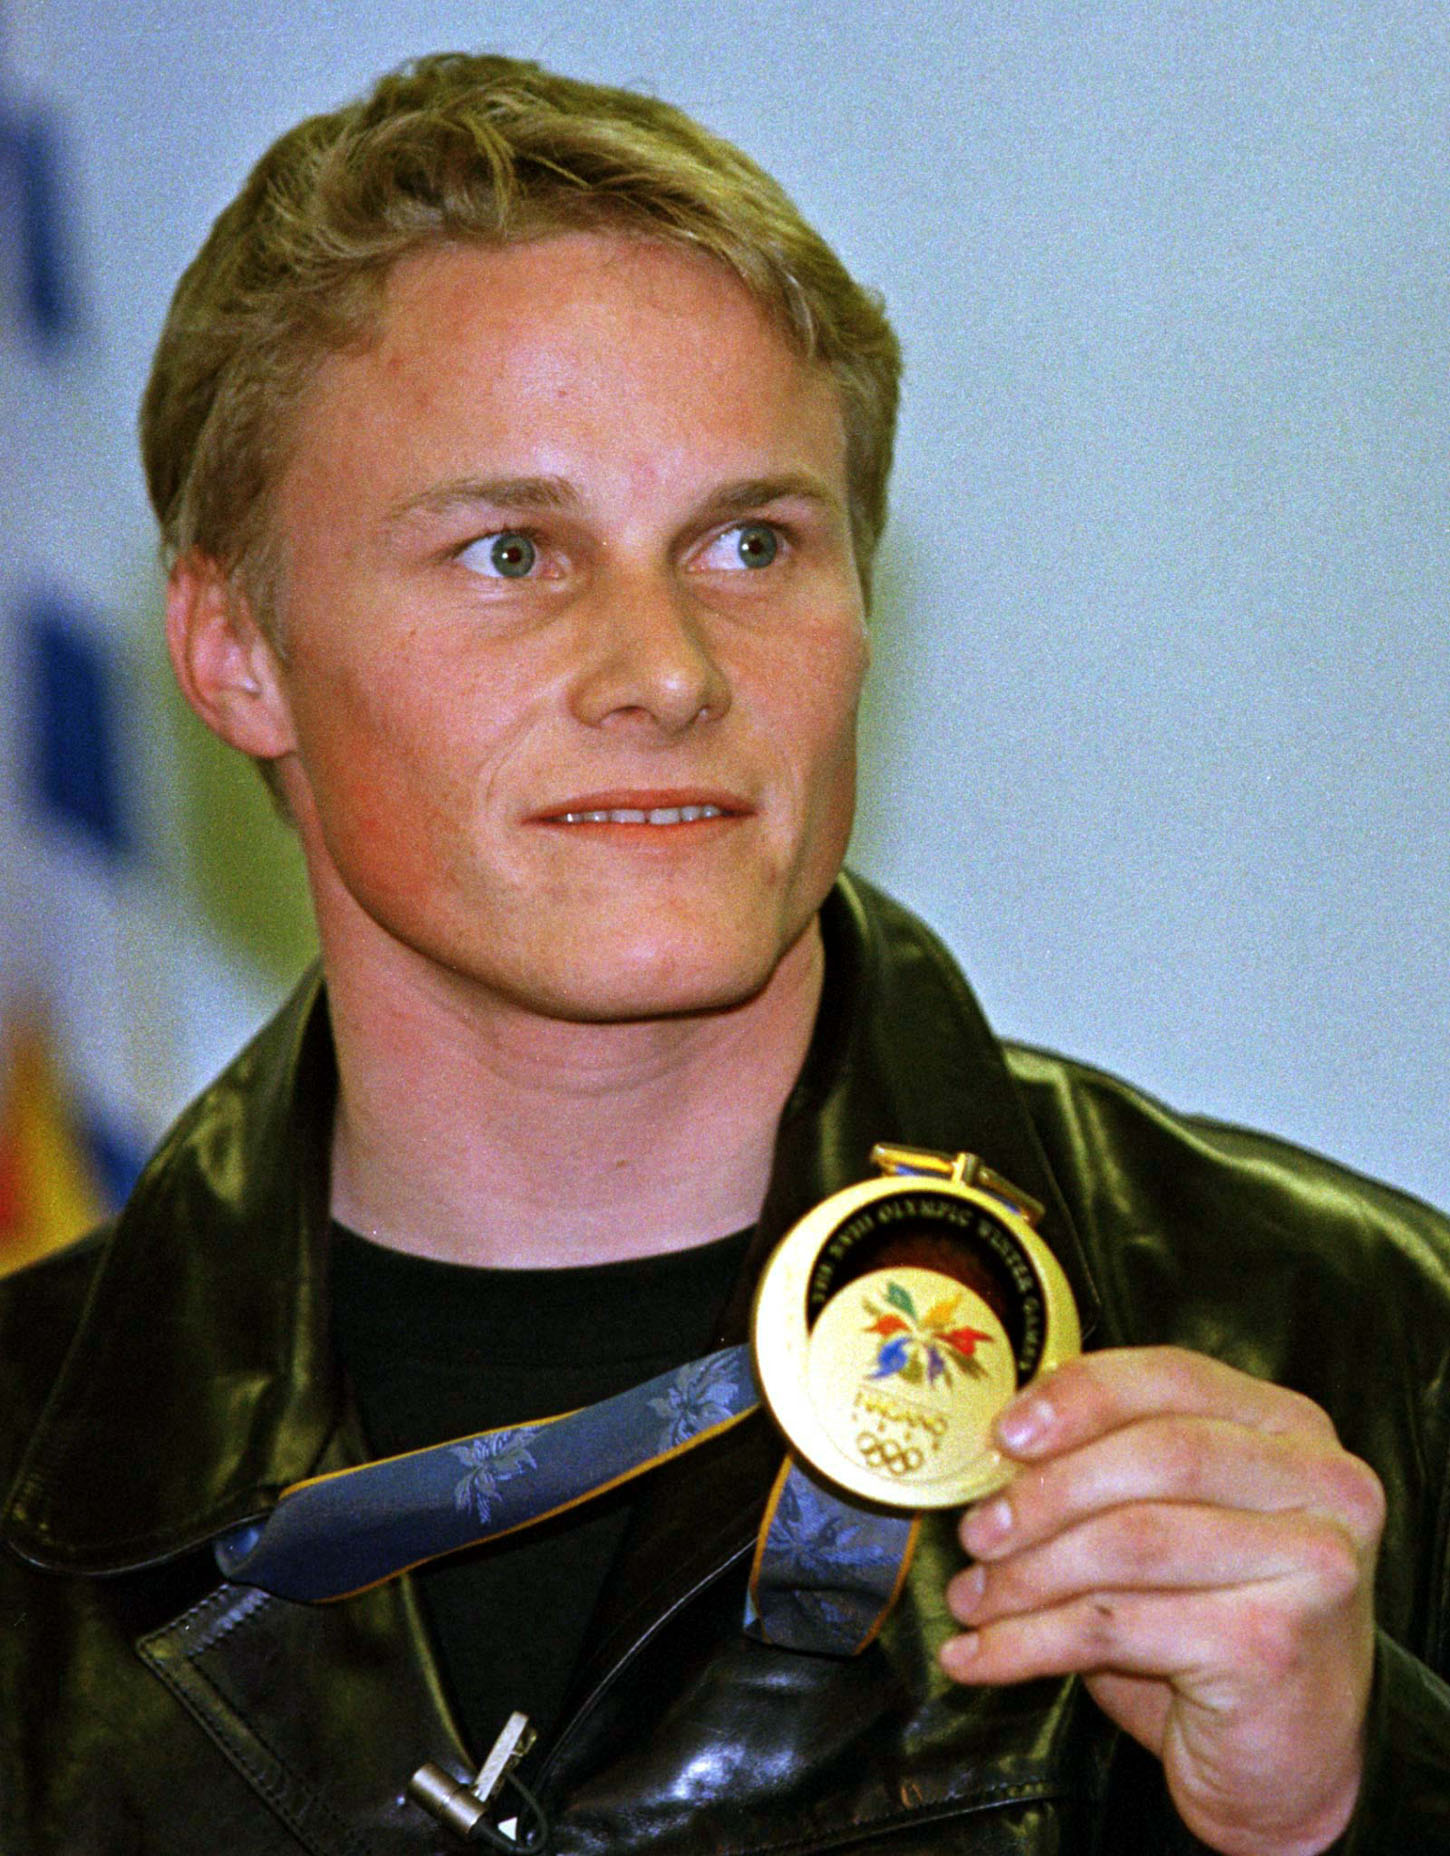 Olympic snowboarder Ross Rebagliati displays his gold medal during a news conference at the Vancouver Airport after arriving here February 16. Rebagliati will be honored with a parade February 17 when he returns to his home town of Whistler, 70 miles from Vancouver. - PBEAHULZOAT